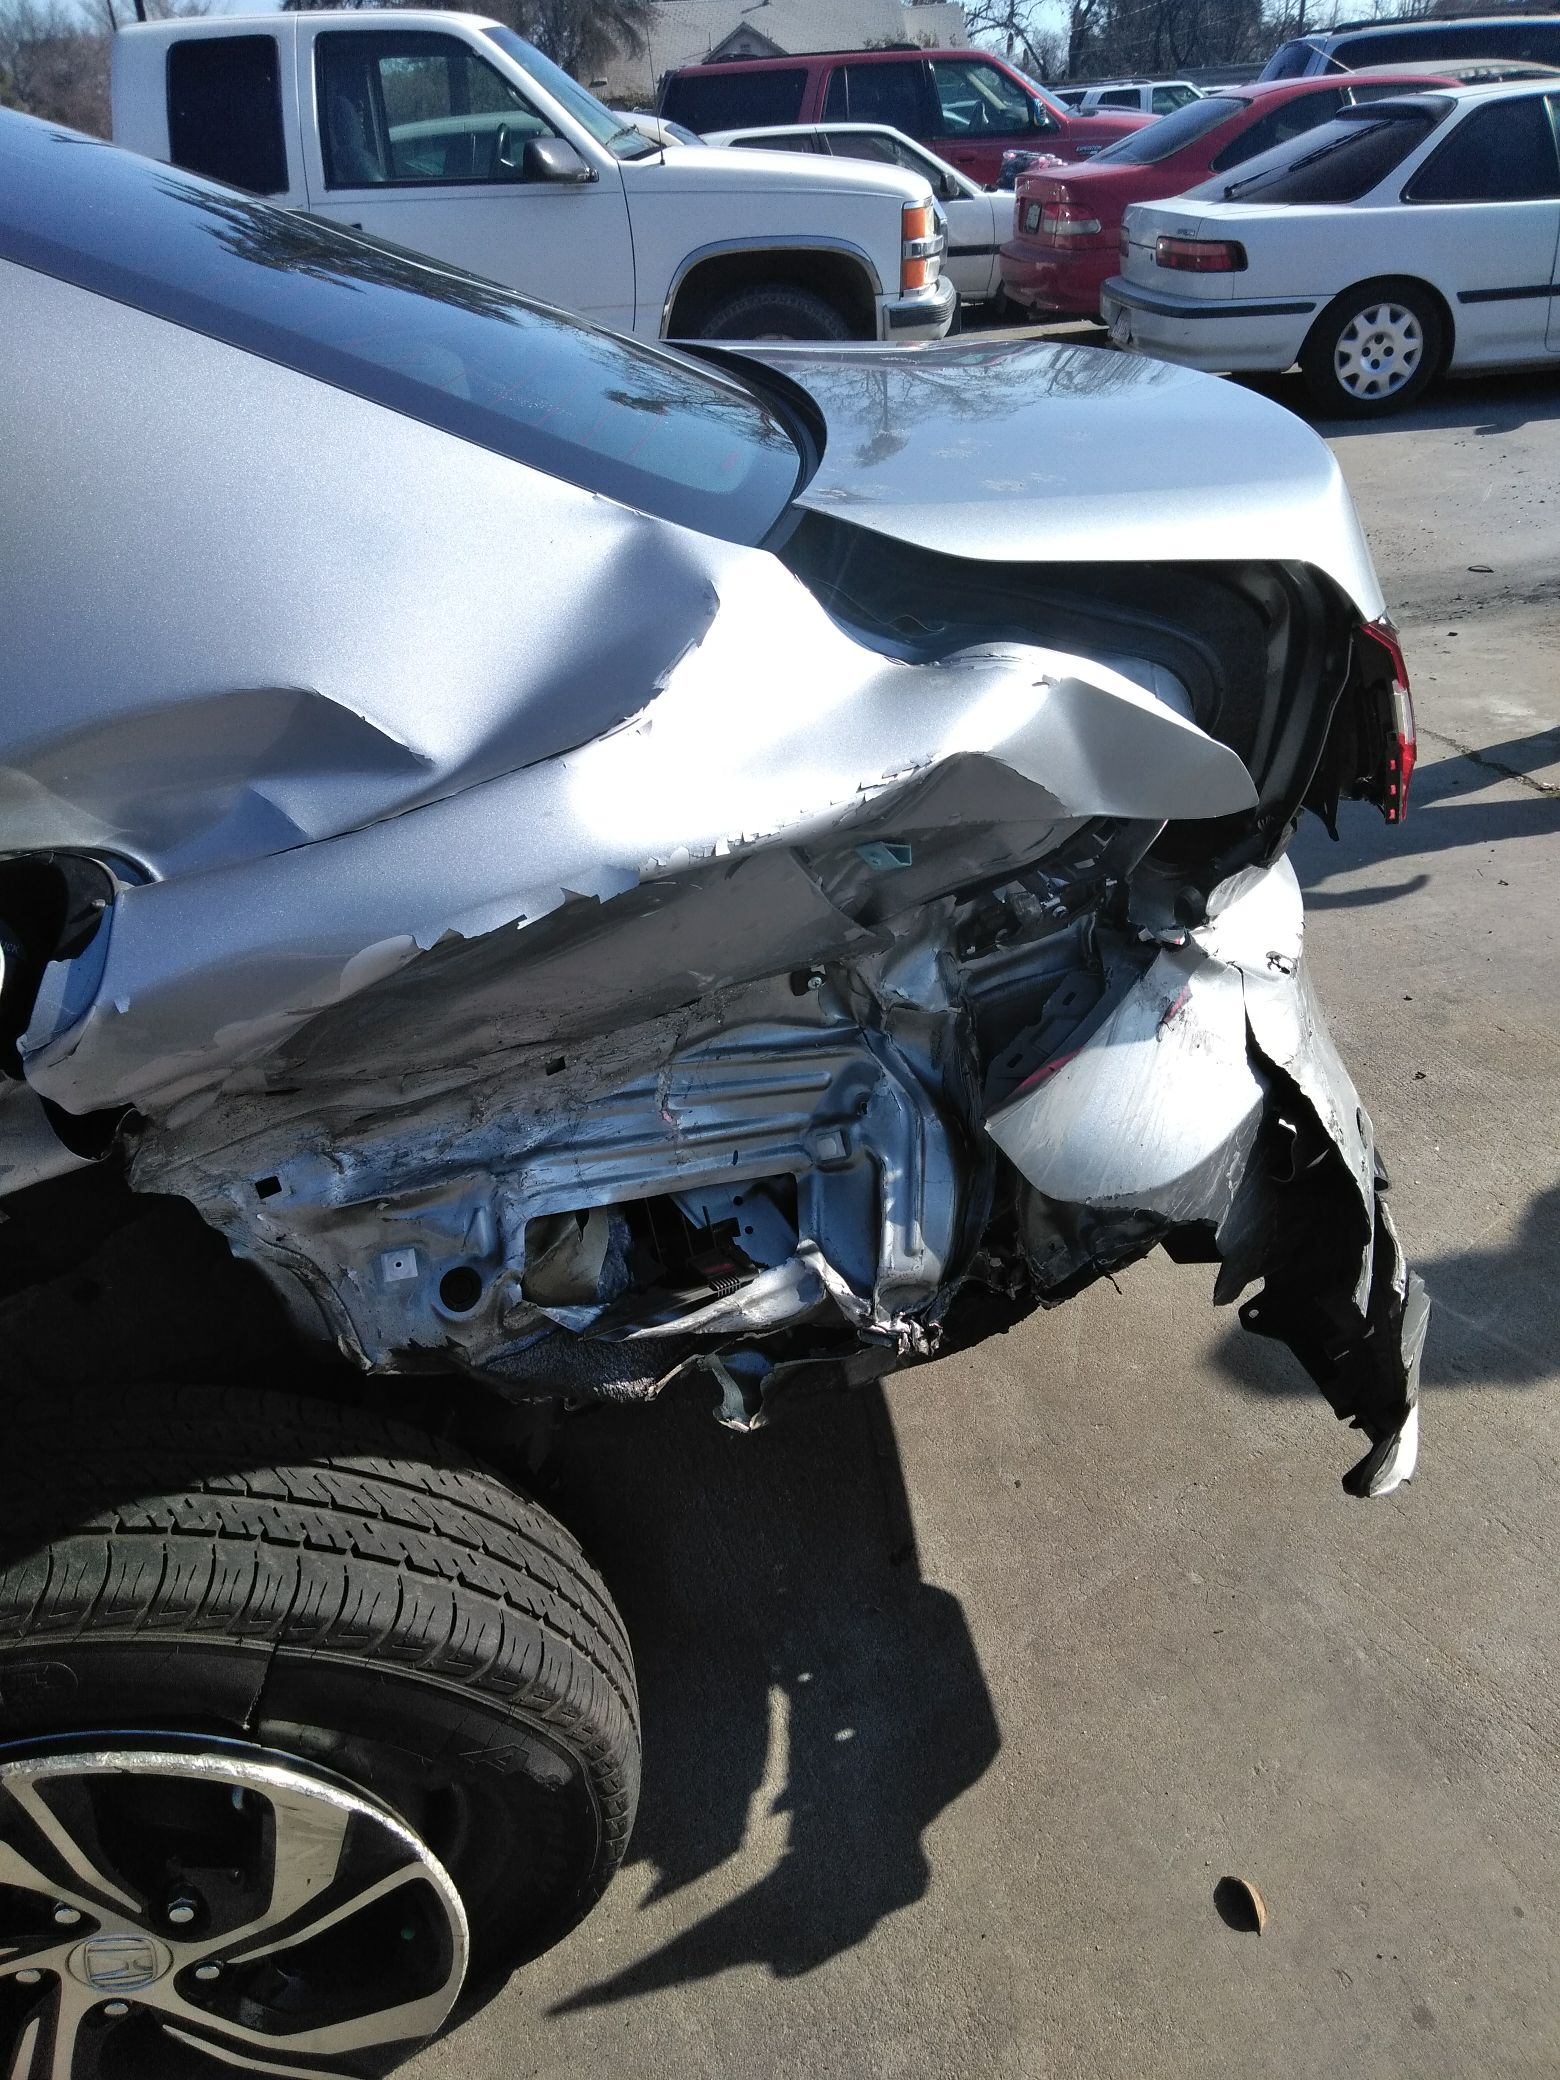 Lower left inner rear wheel detached estimated auto damages $12,000.{&amp;nbsp;} Courtesy Natasha Arnold.{&amp;nbsp;}<p></p>